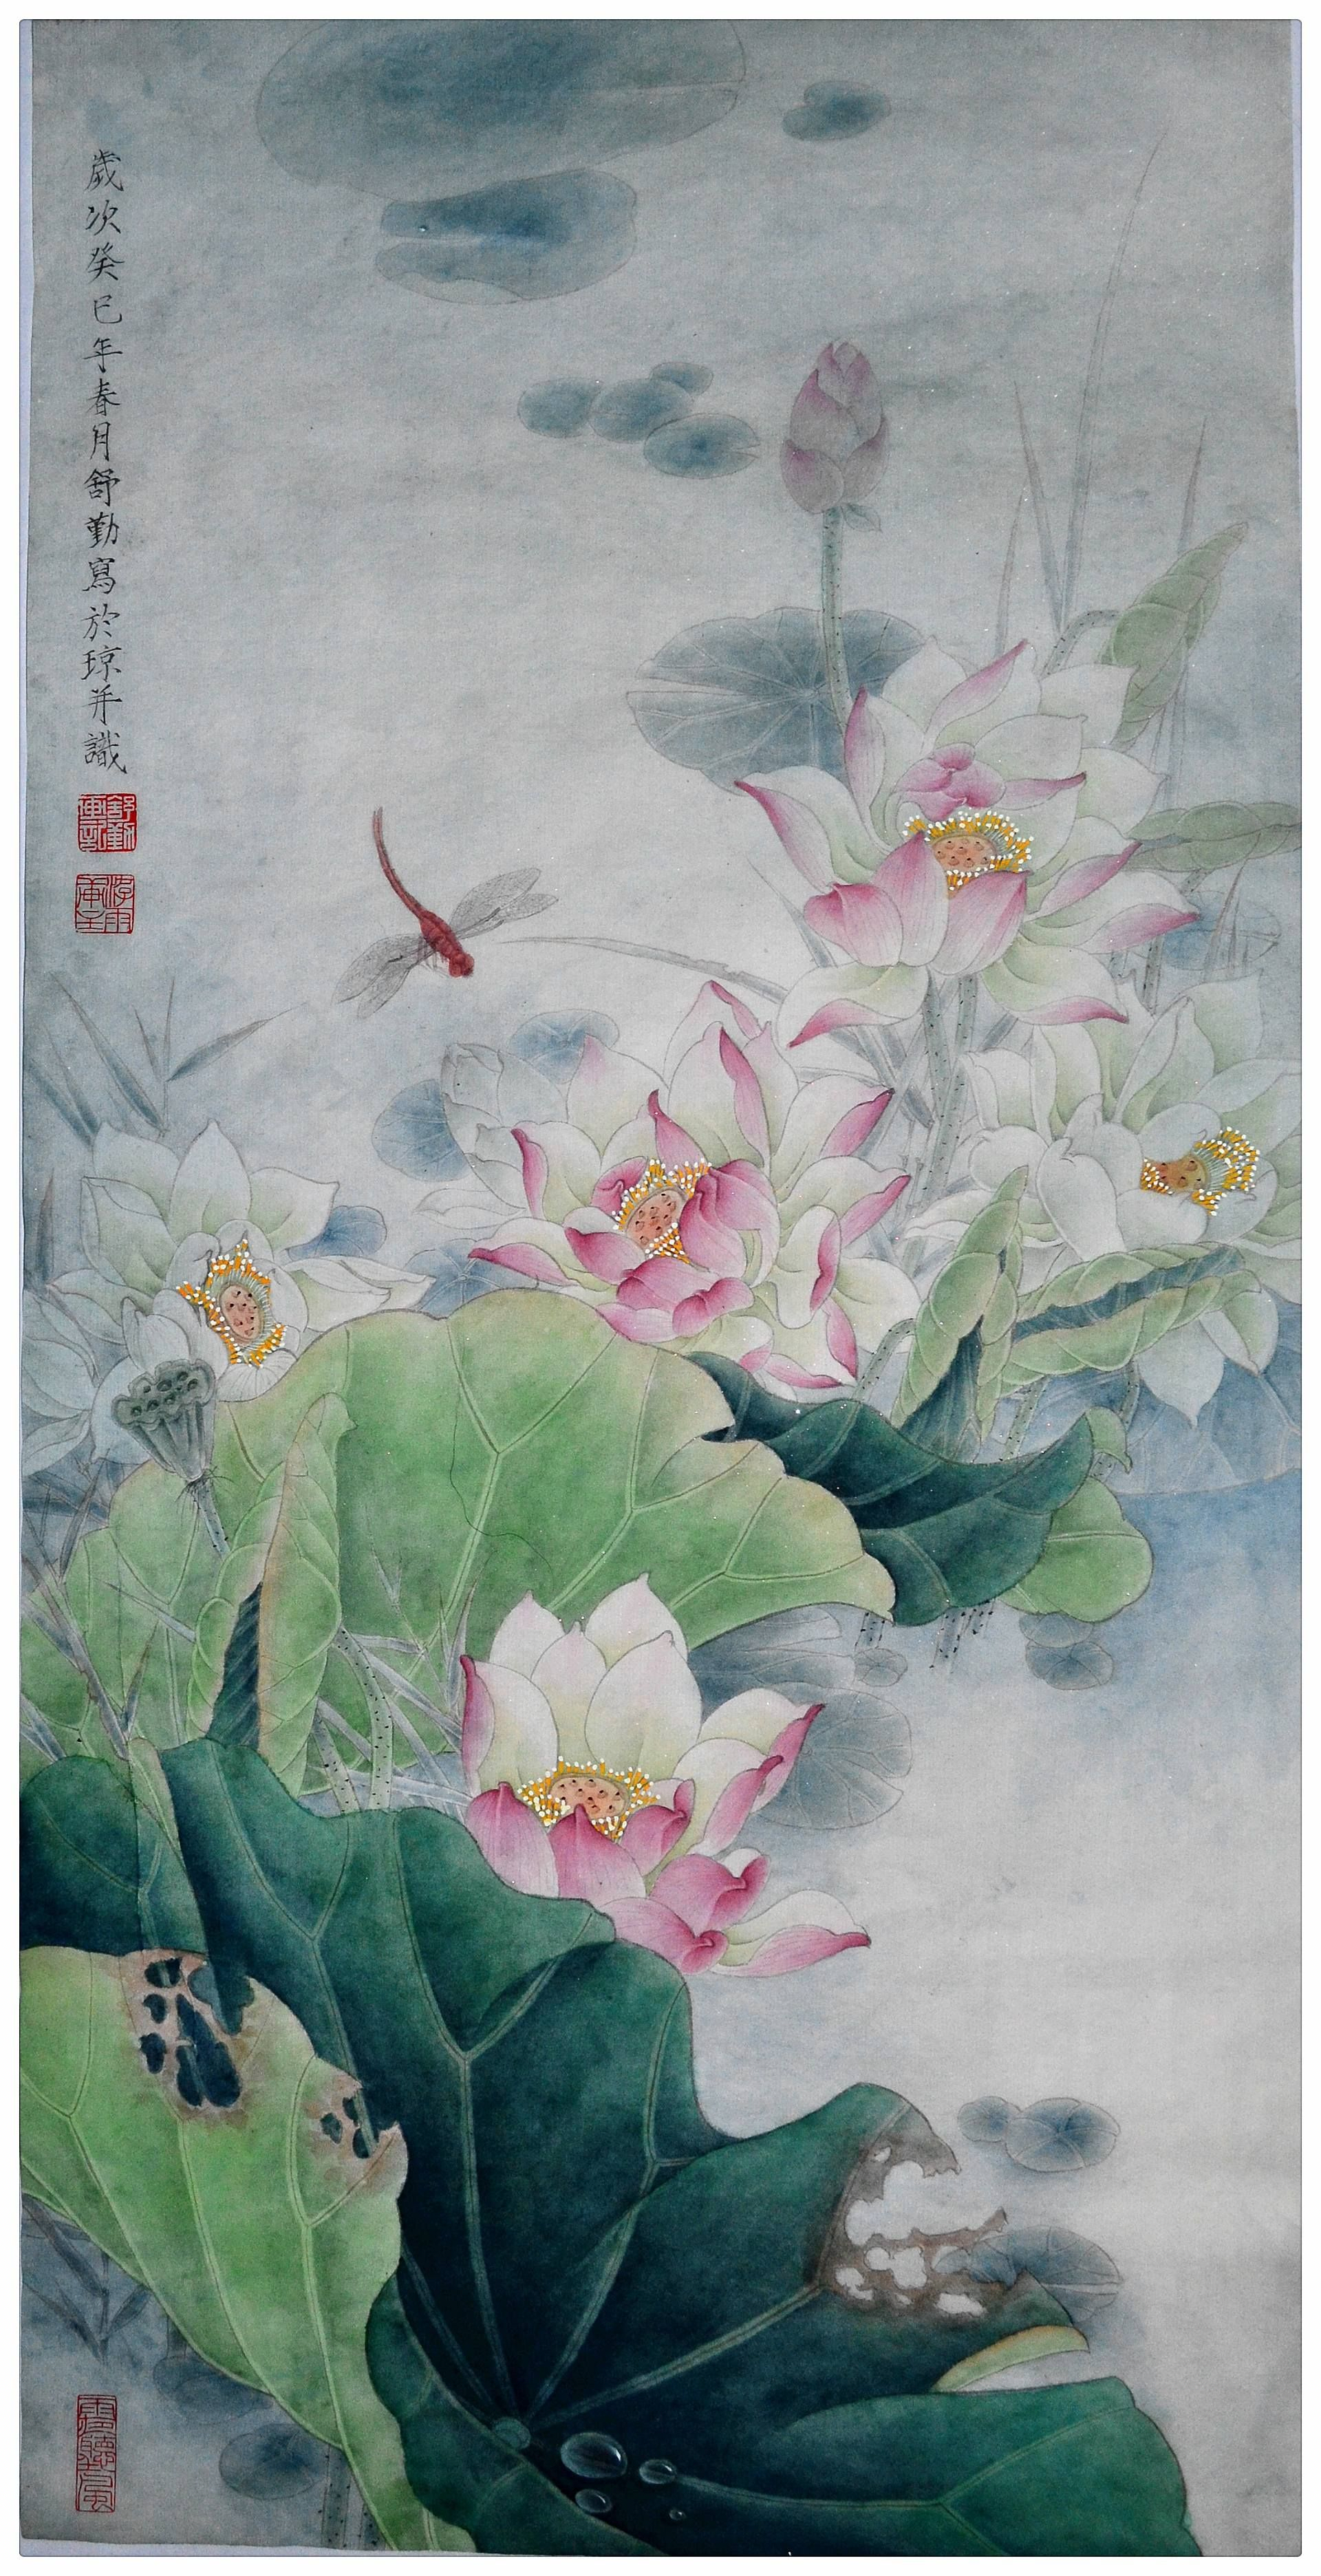 Original chinese gongbi painting lotus flower with moonlight discover thousands of other original paintings prints sculptures and photography from independent artists izmirmasajfo